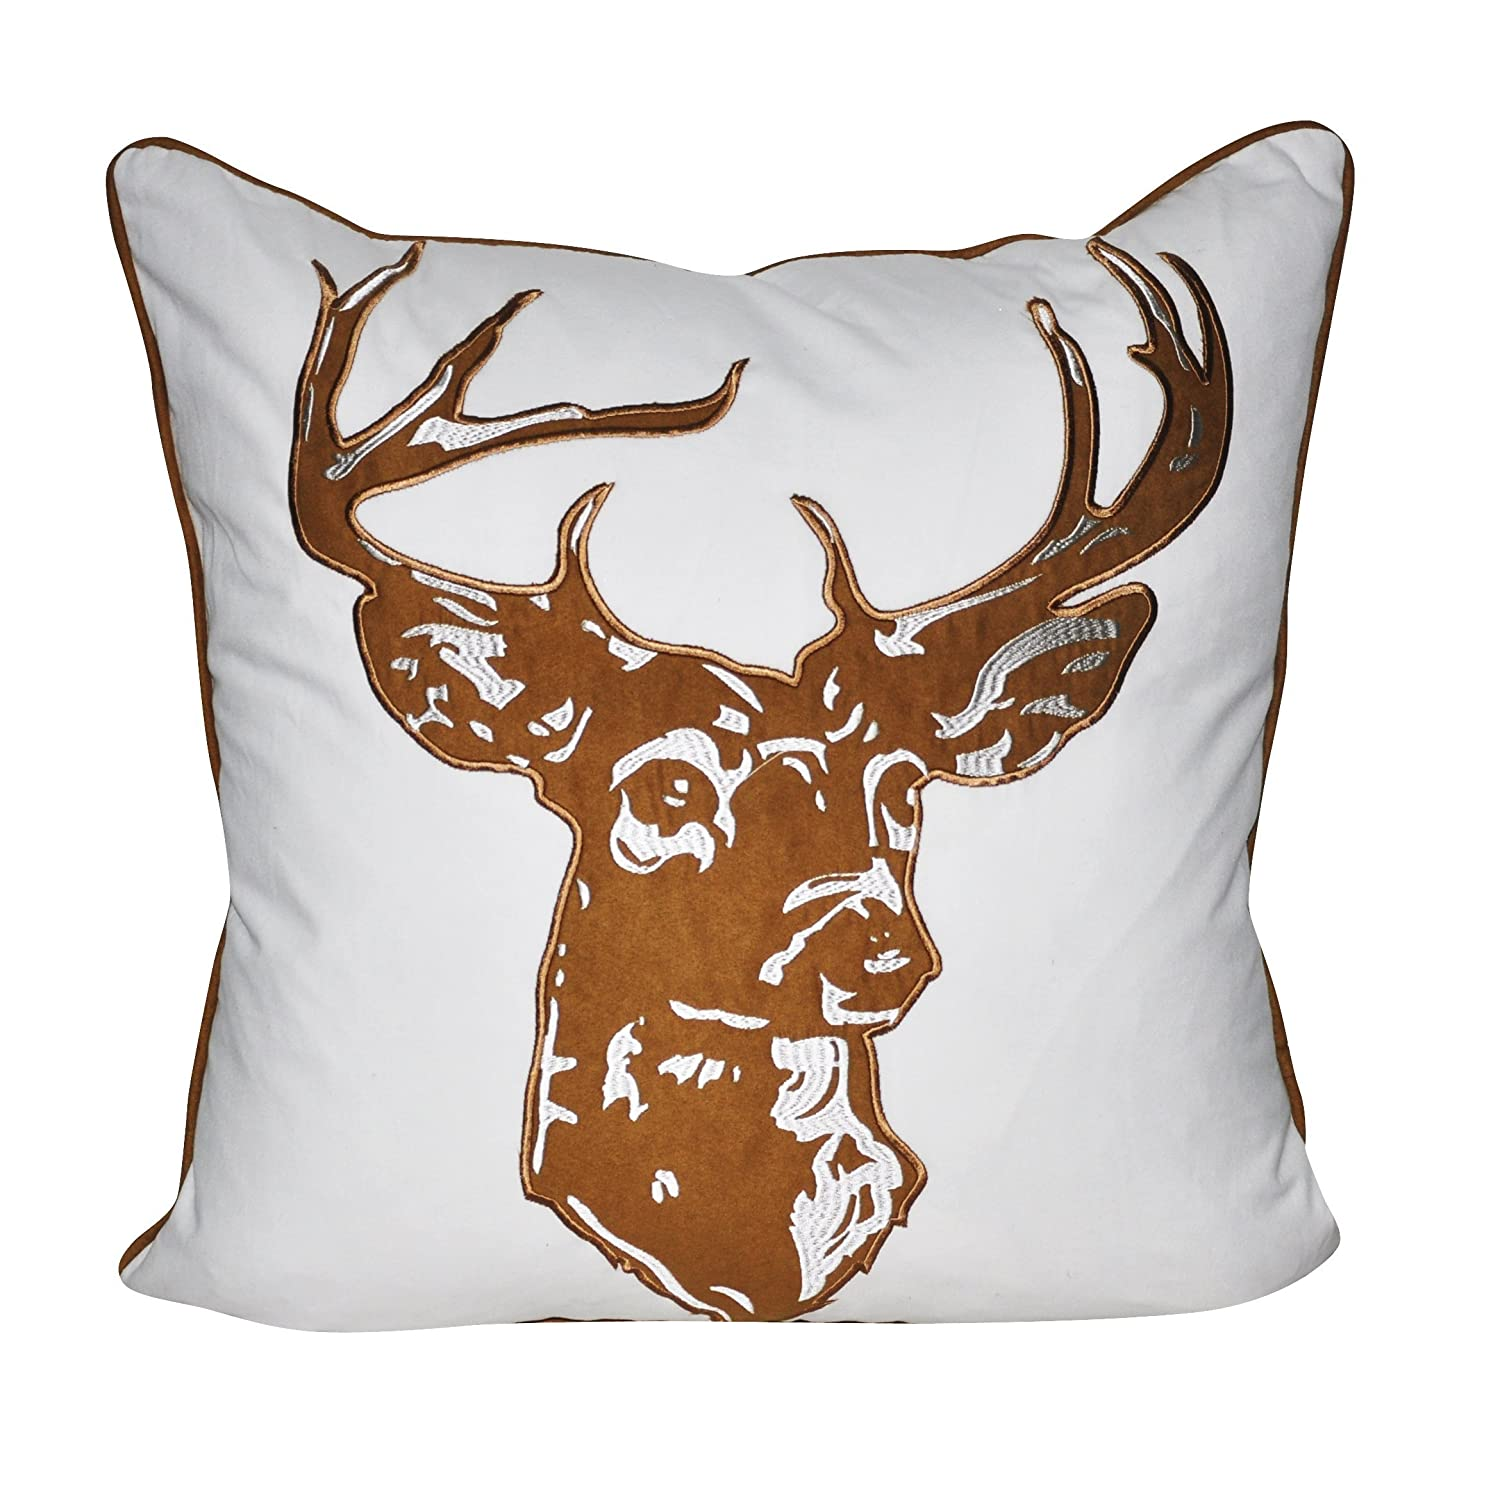 Loom and Mill Brown Stag Deer Decorative Plush and Fluffy Accent Decor Throw Pillow, 22' x 22',  Brown/White